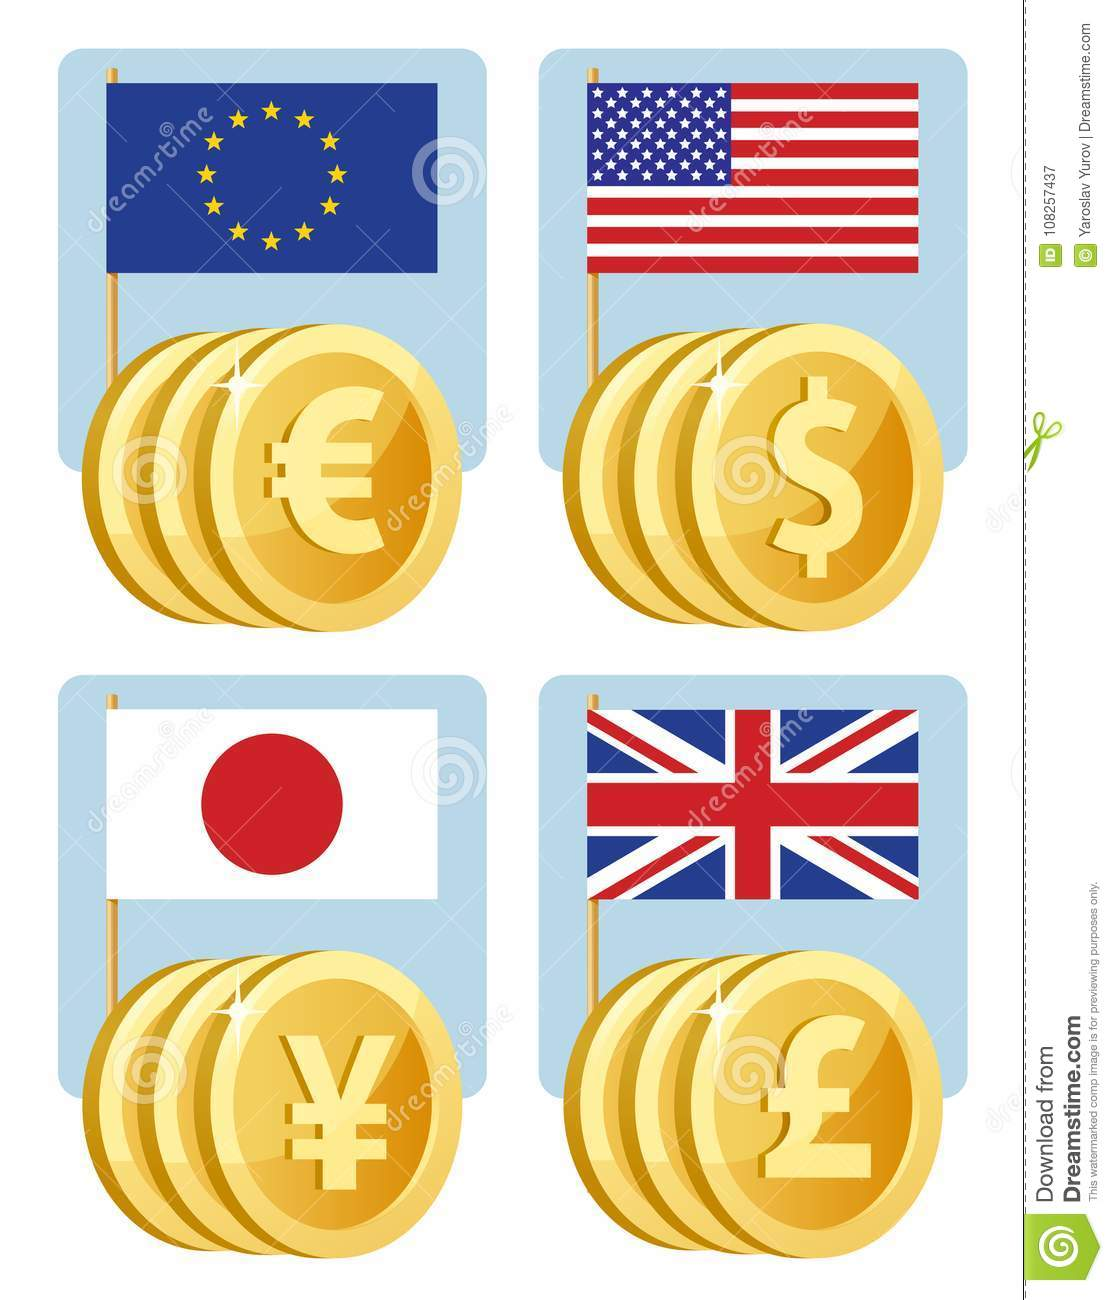 Libra A Euro Currency Symbols Euro Dollar Yen Pound Sterling Flags Of Th